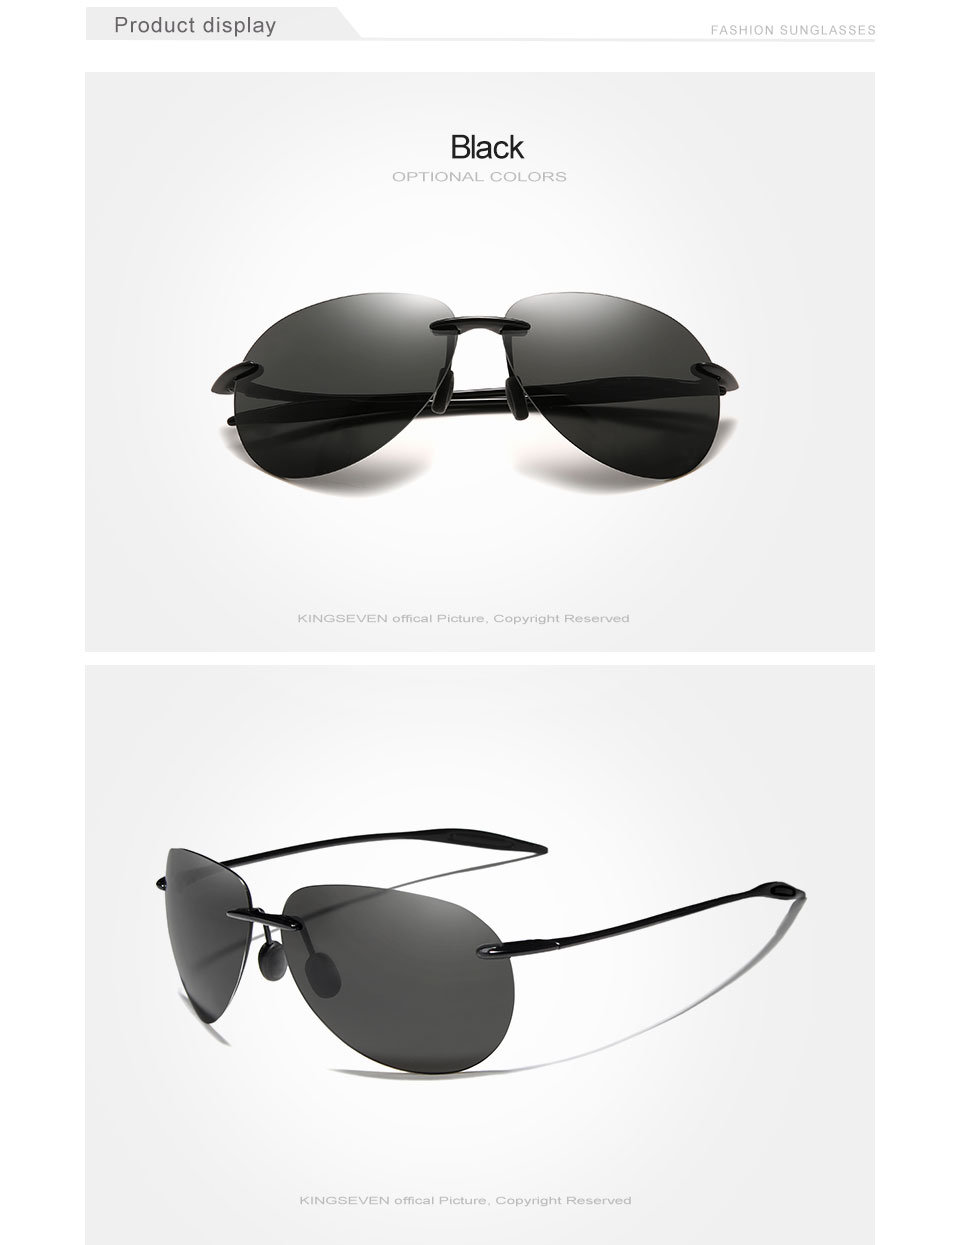 Hb39b28bb689841c3b68370763c9eed03Z - KINGSEVEN Ultralight TR90 Rimless Sunglasses Men High Quality Frameless Sun Glasses For Women Oculos Feminino